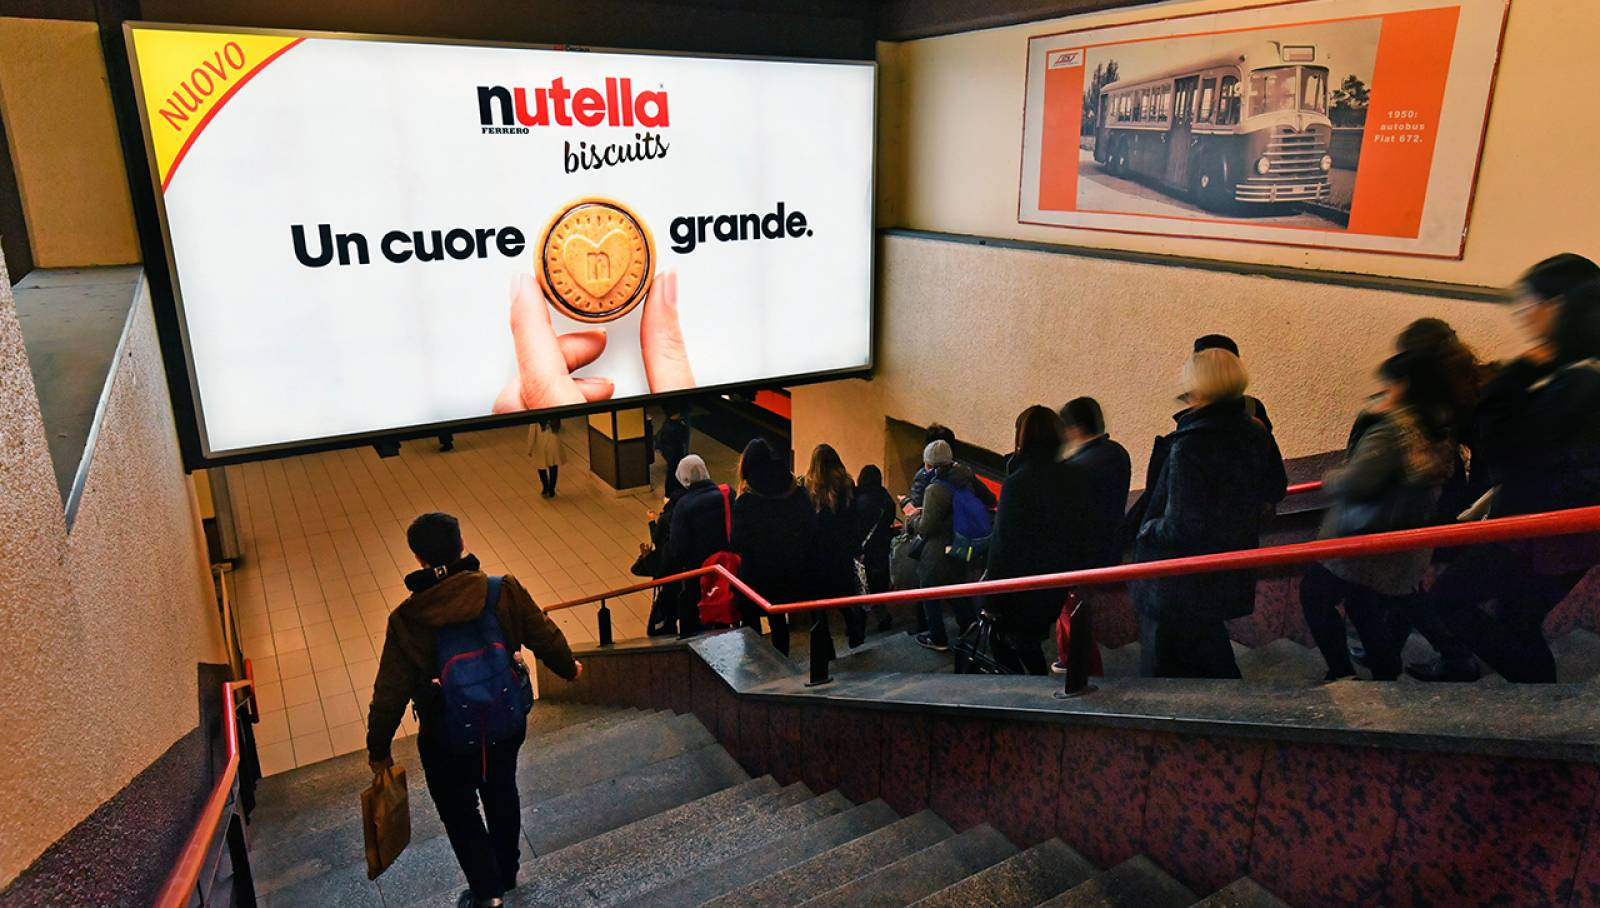 Underground Out of Home advertising in Milan IGPDecaux Station Domination for Ferrero Nutella Biscuits